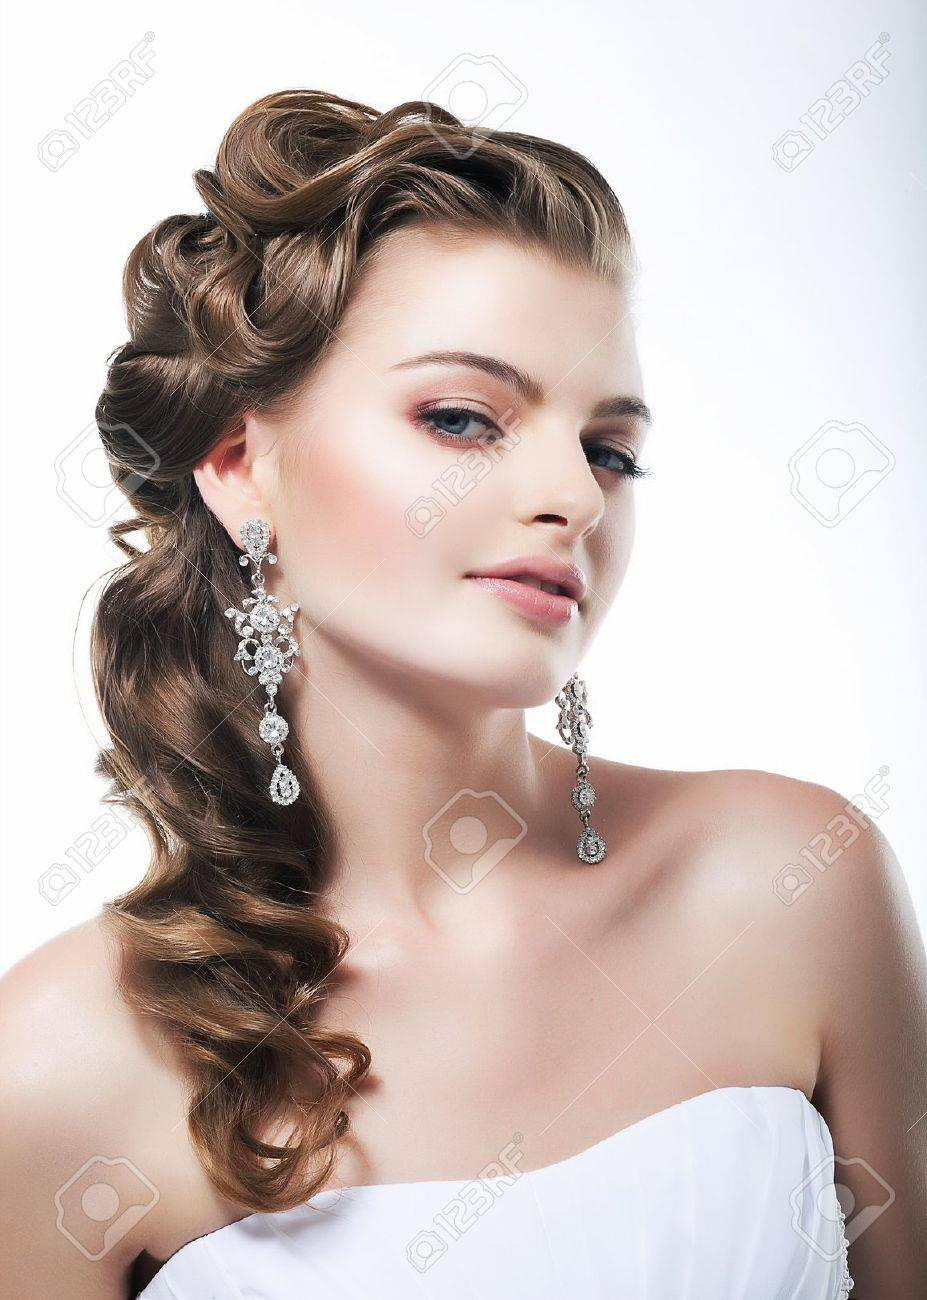 White dress and makeup - Beautiful Bride In White Dress Festive Coiffure And Makeup Stock Photo 14257217